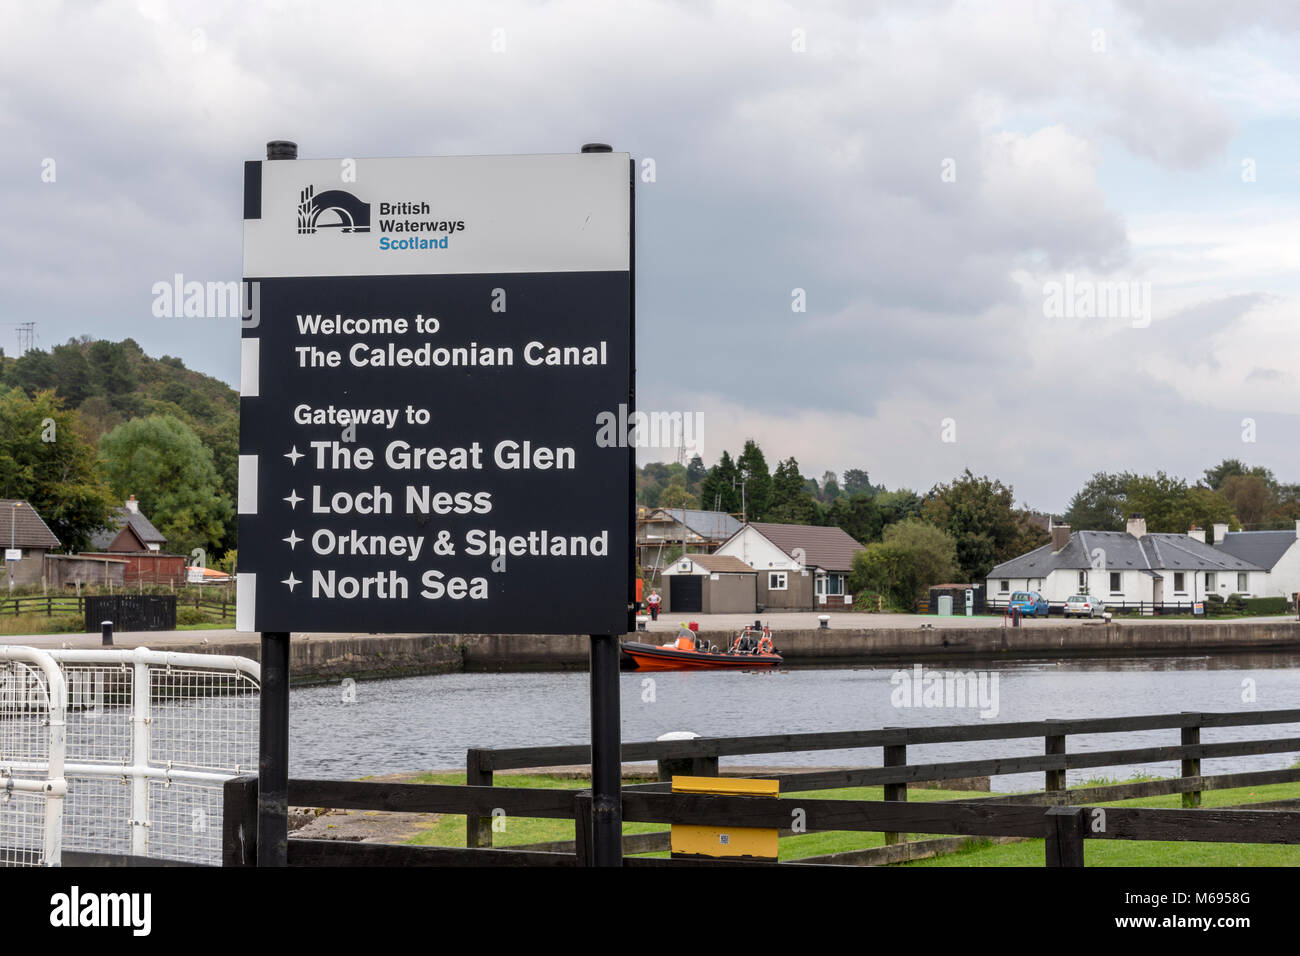 British Waterways Scotland the sign for the Caledonian Canal gateway to the Great Glen Loch Ness Orkney and Shetland - Stock Image